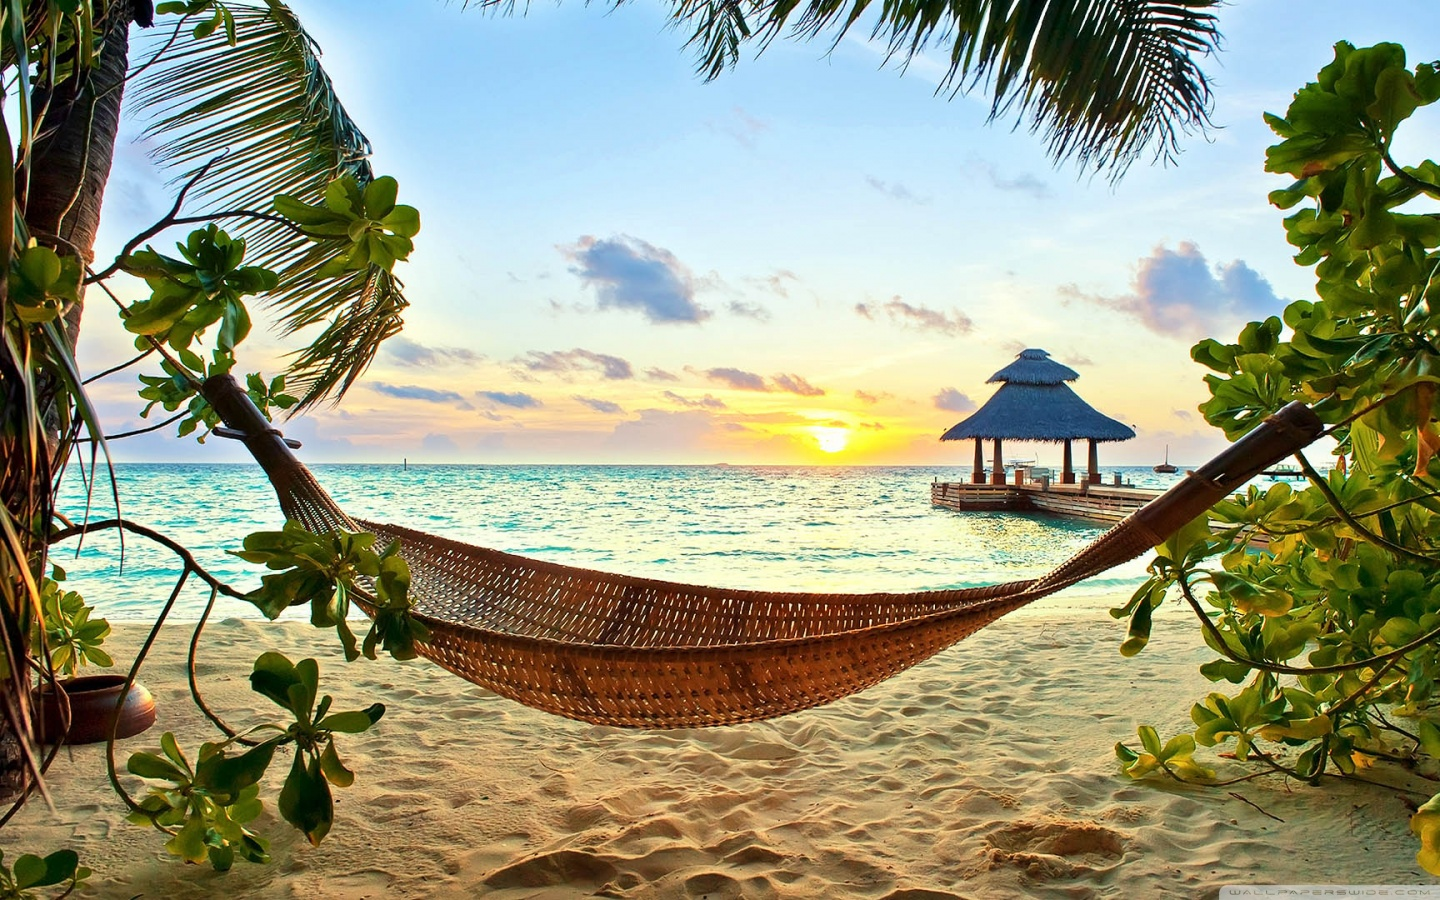 Tropical Paradise Wallpaper High Resolution: Download Wallpapers That Say Your Name Gallery